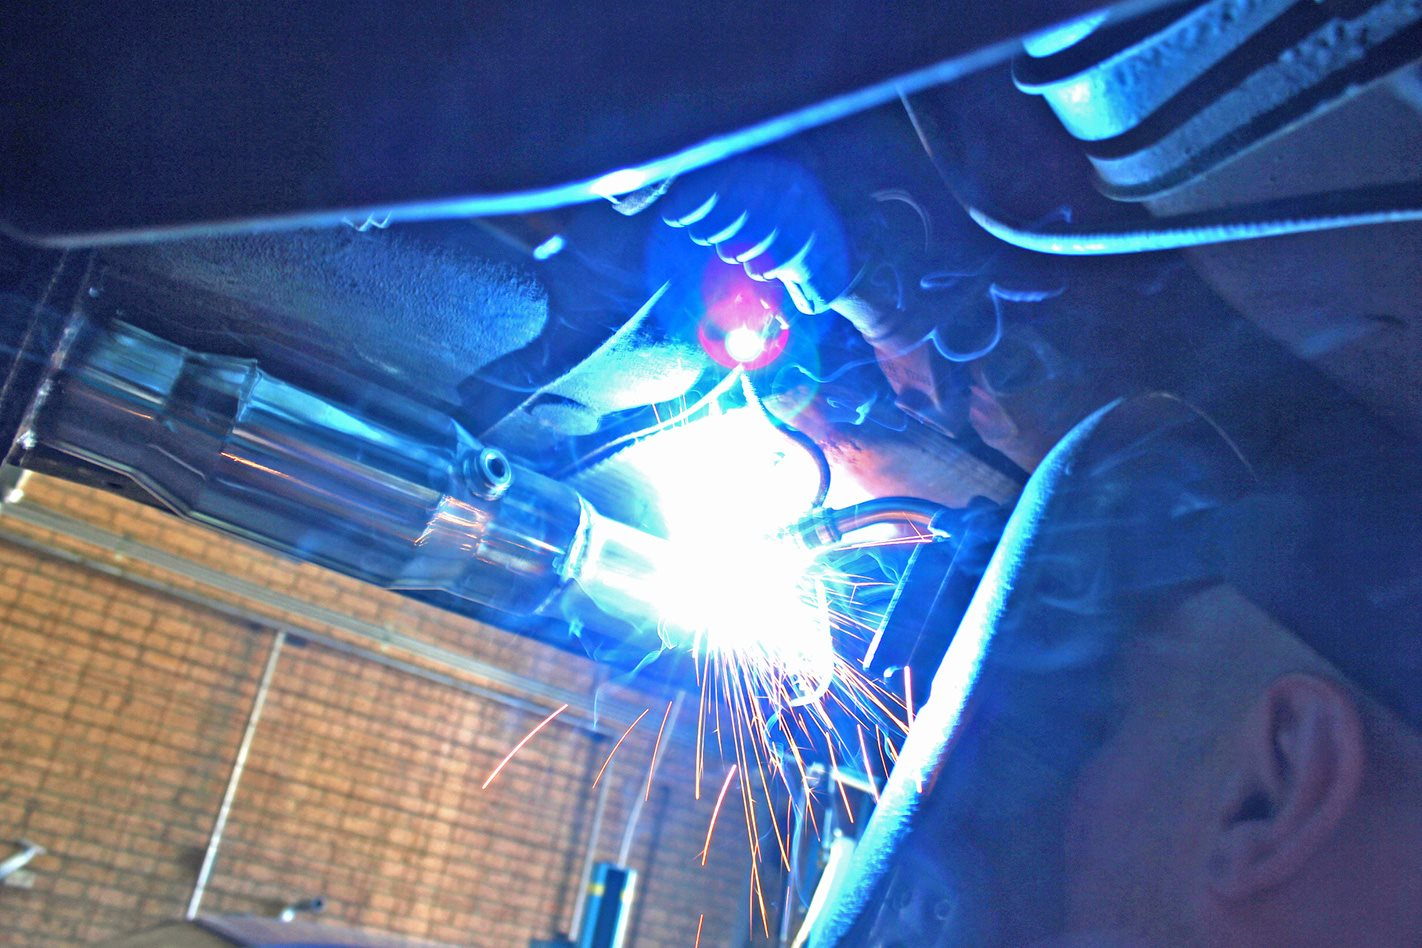 at is welded into place on the existing stainless-steel exhaust pipe